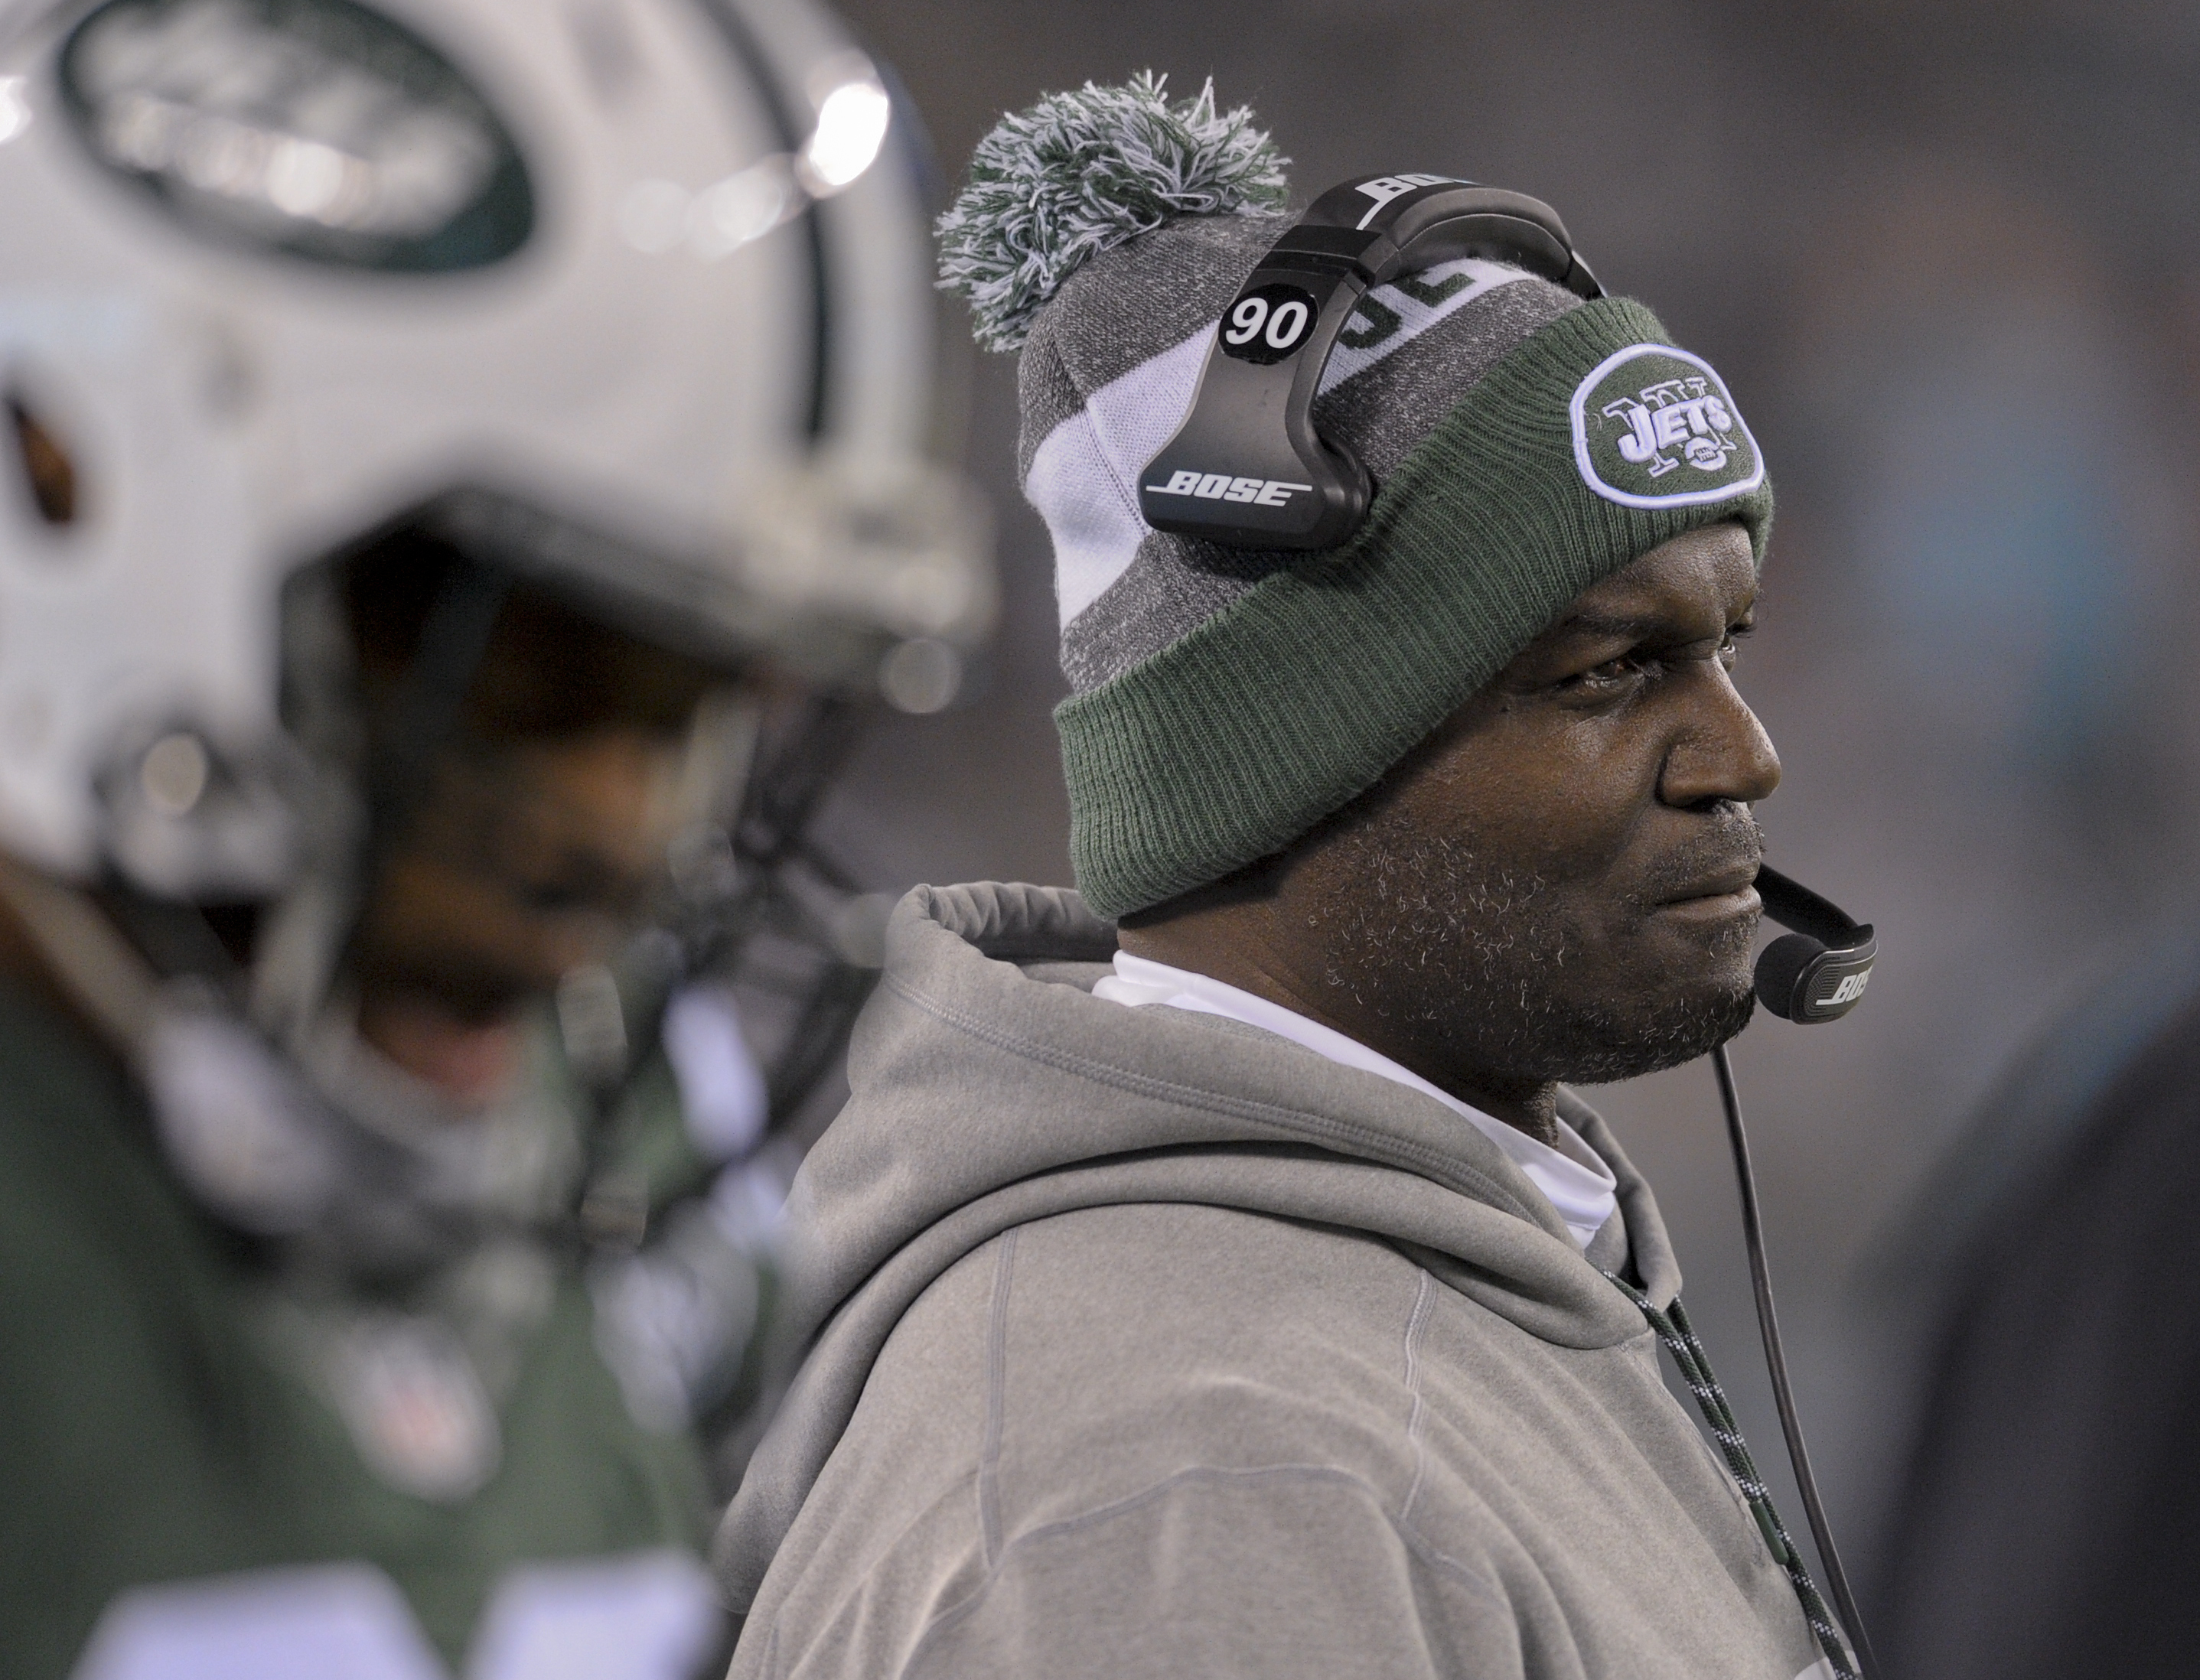 FILE - In this Saturday, Dec. 17, 2016, file photo, New York Jets head coach Todd Bowles watches from the sidelines during the fourth quarter of an NFL football game against the Miami Dolphins in East Rutherford, N.J. Bowles is in just second season as co